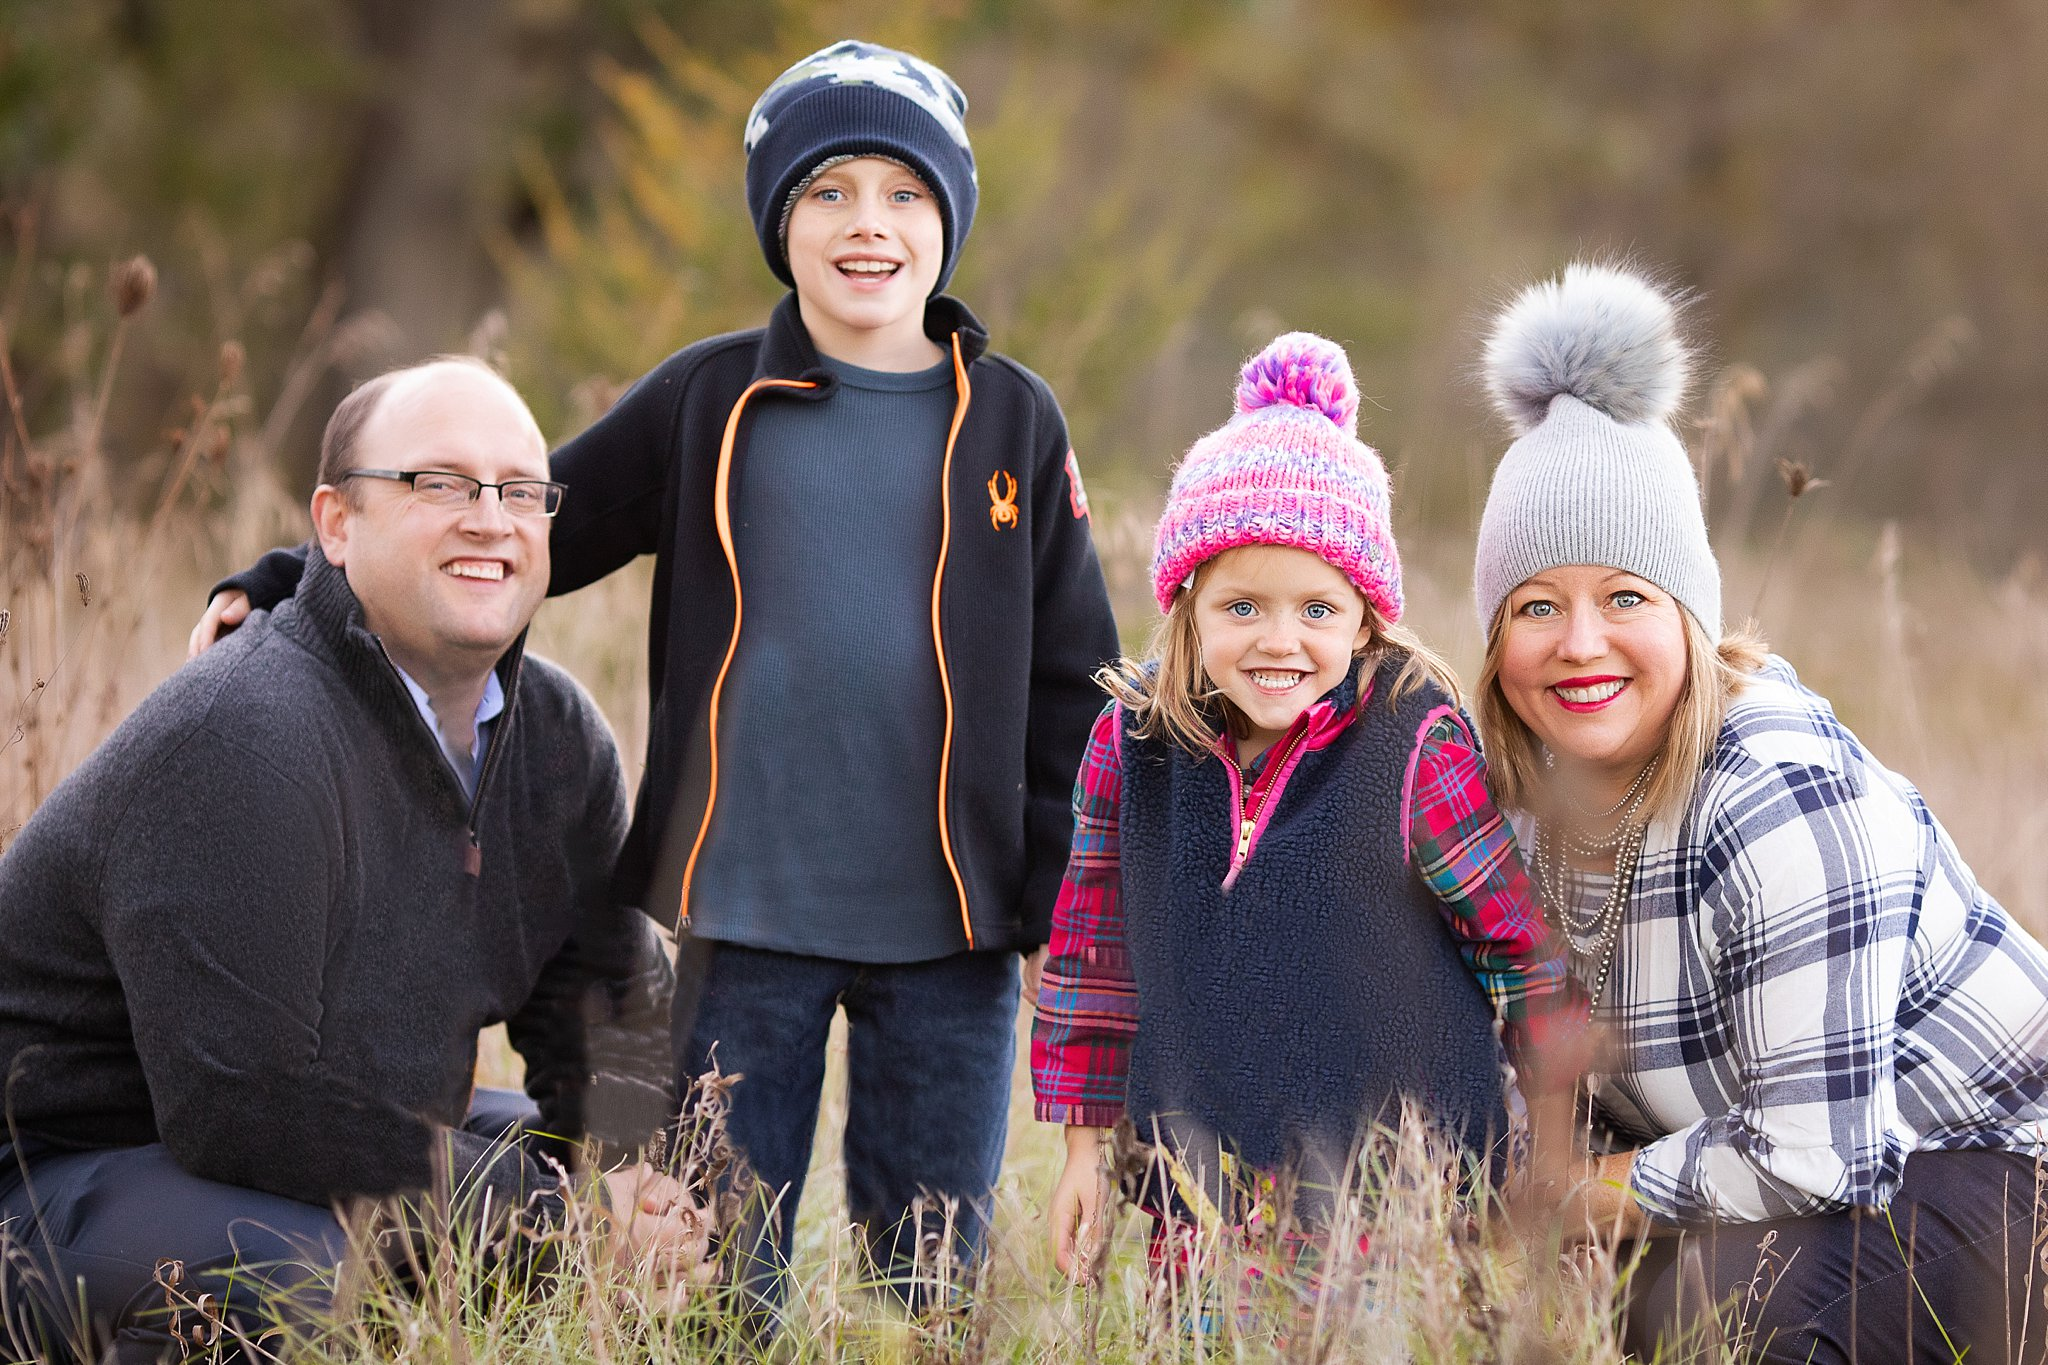 So Much Joy! | Dexter Mi Family Photographer